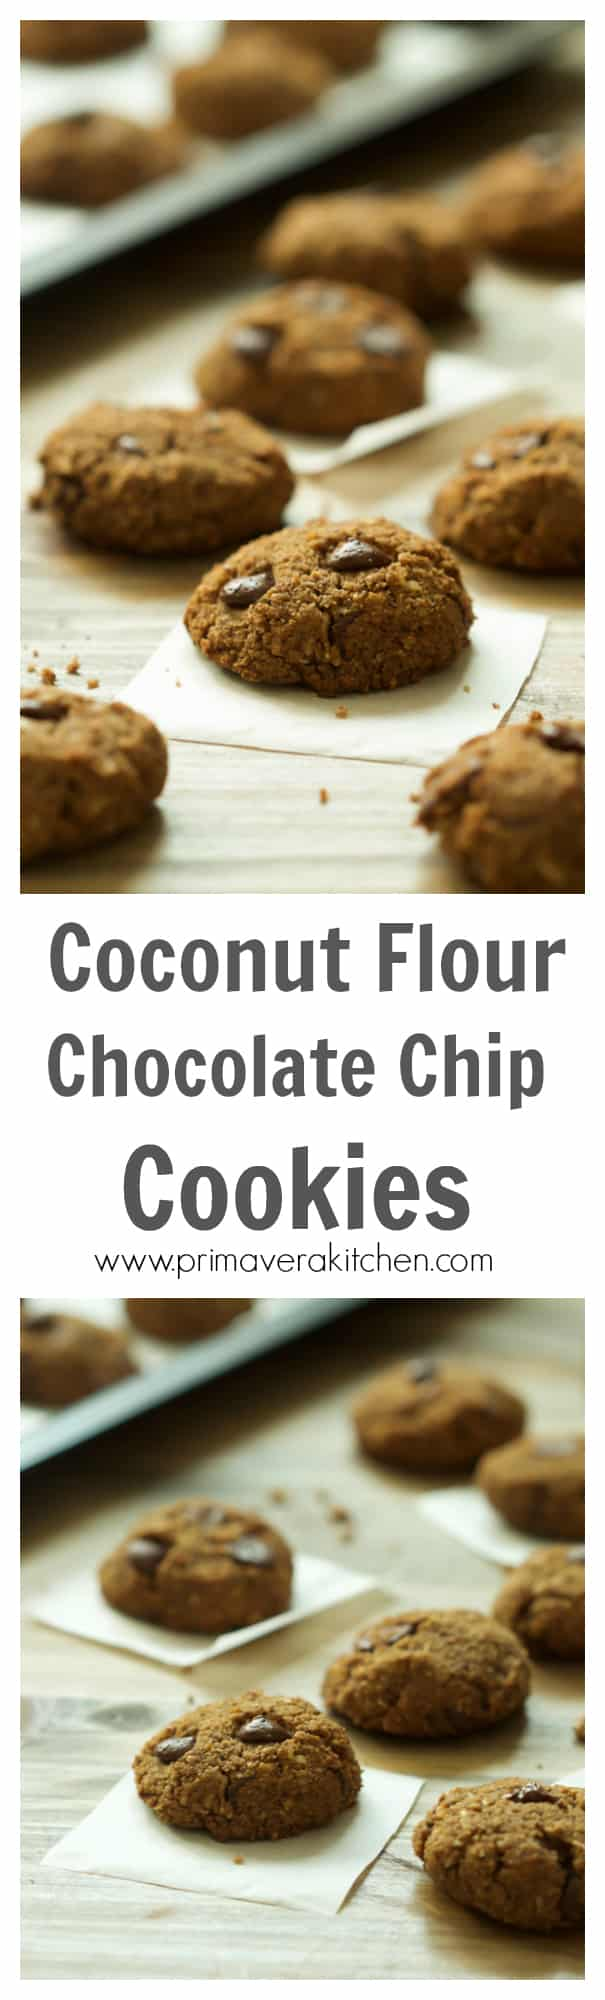 gluten-free-coconut-flour-chocolate-chip-cookies - Gluten-free Coconut Flour Chocolate Chip Cookies - These Paleo, Gluten and dairy-free Coconut Flour Chocolate Chip Cookies are the best treat because they have no dairy and refined sugar, but yet very delicious and soft.